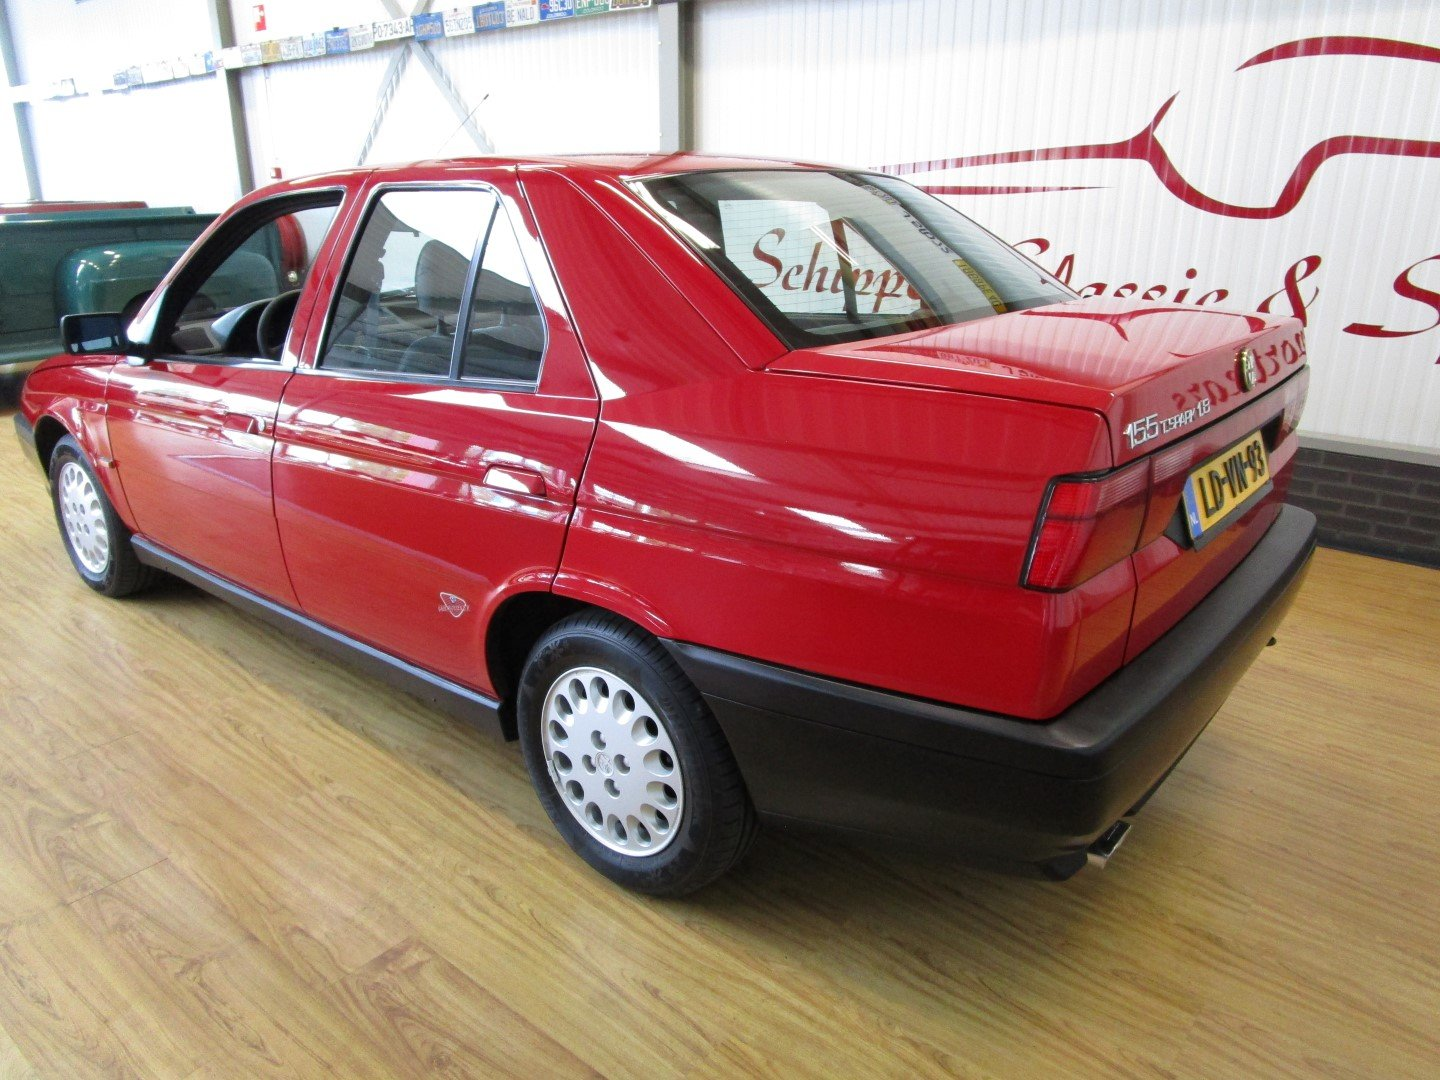 1995 Alfa Romeo 155 1.8L Twin Spark Rosso Second Owner For Sale (picture 3 of 6)